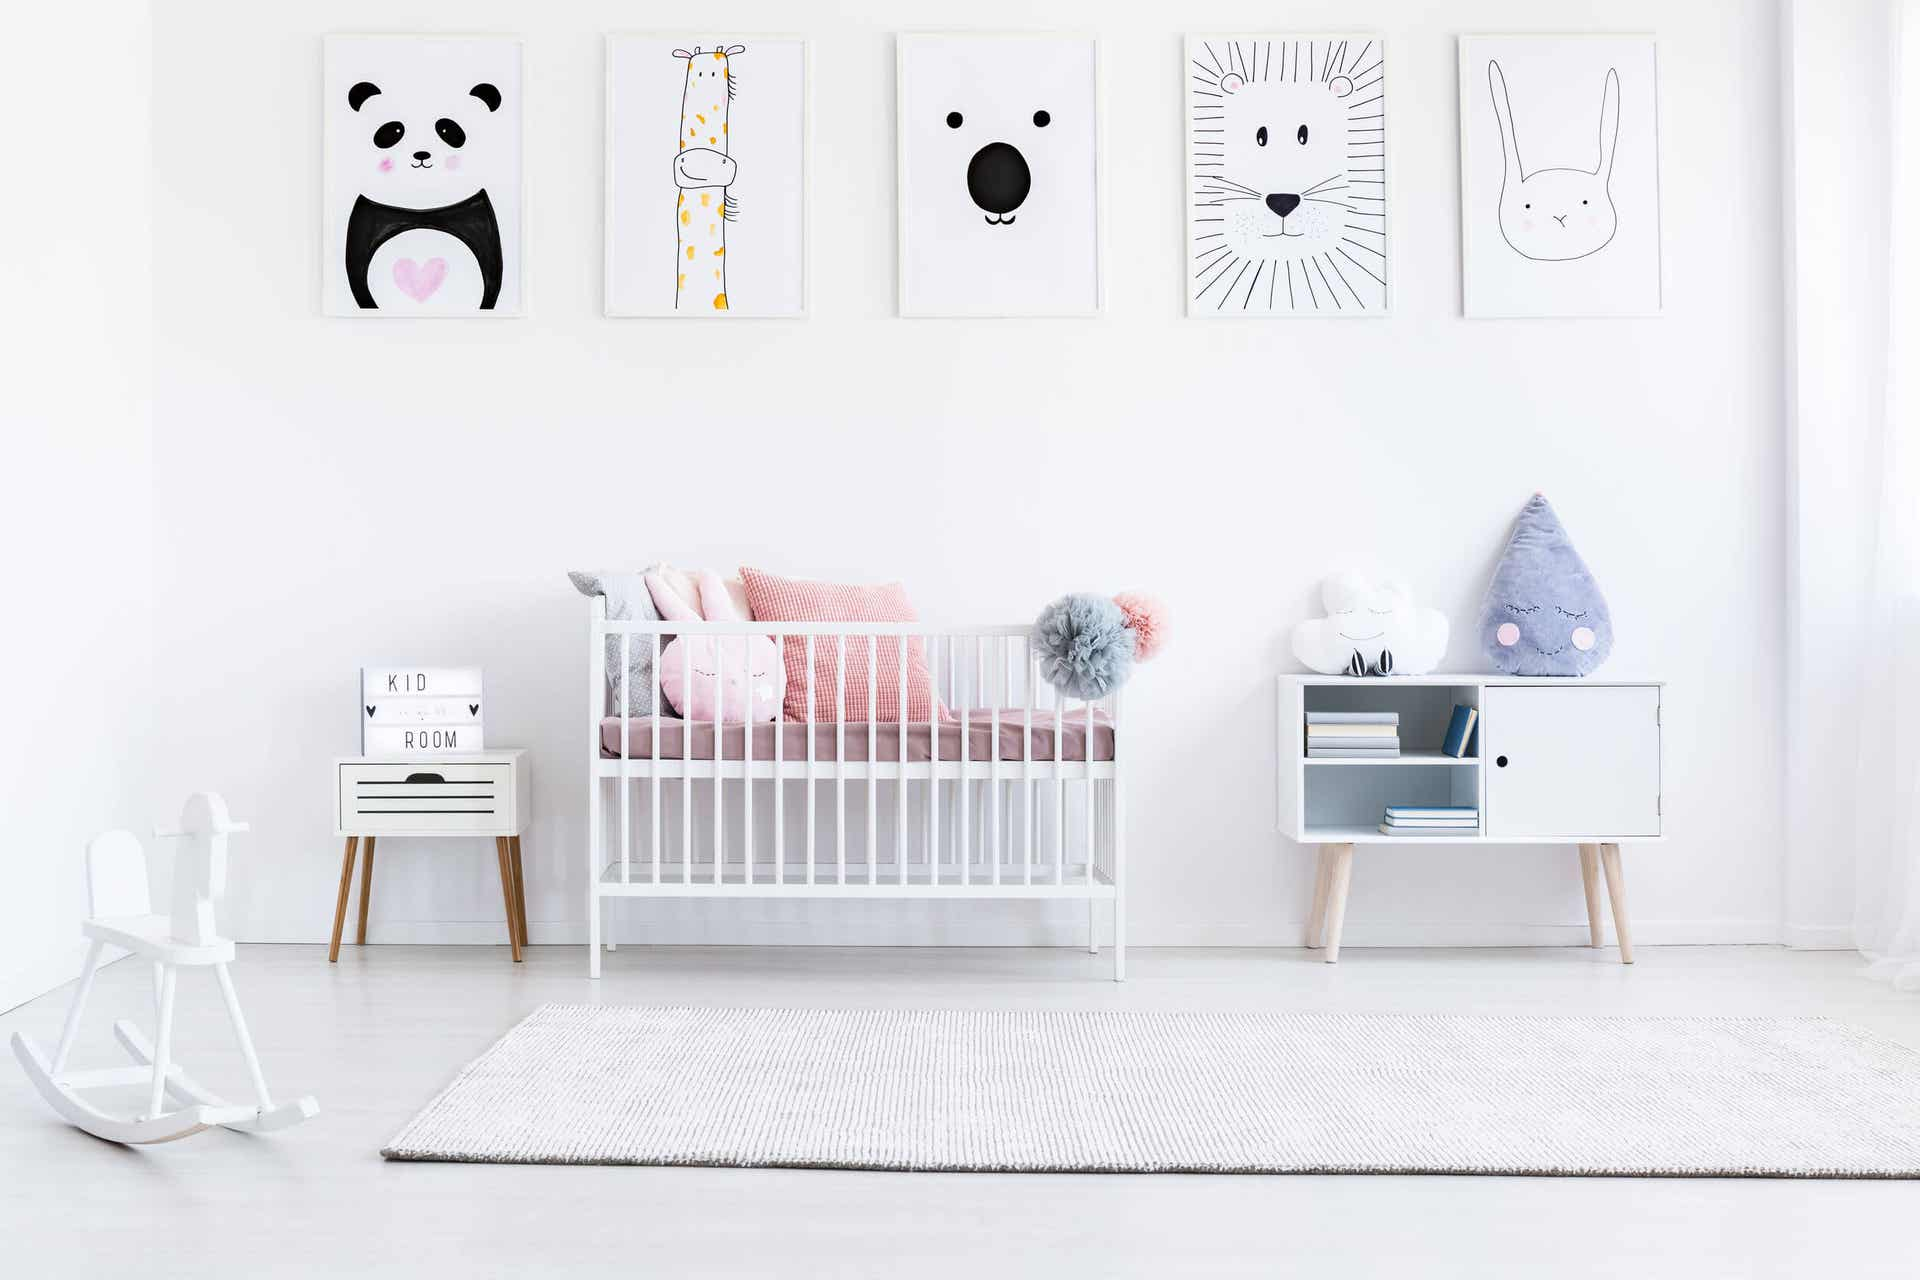 Animal wall art hanging in a child's bedroom.